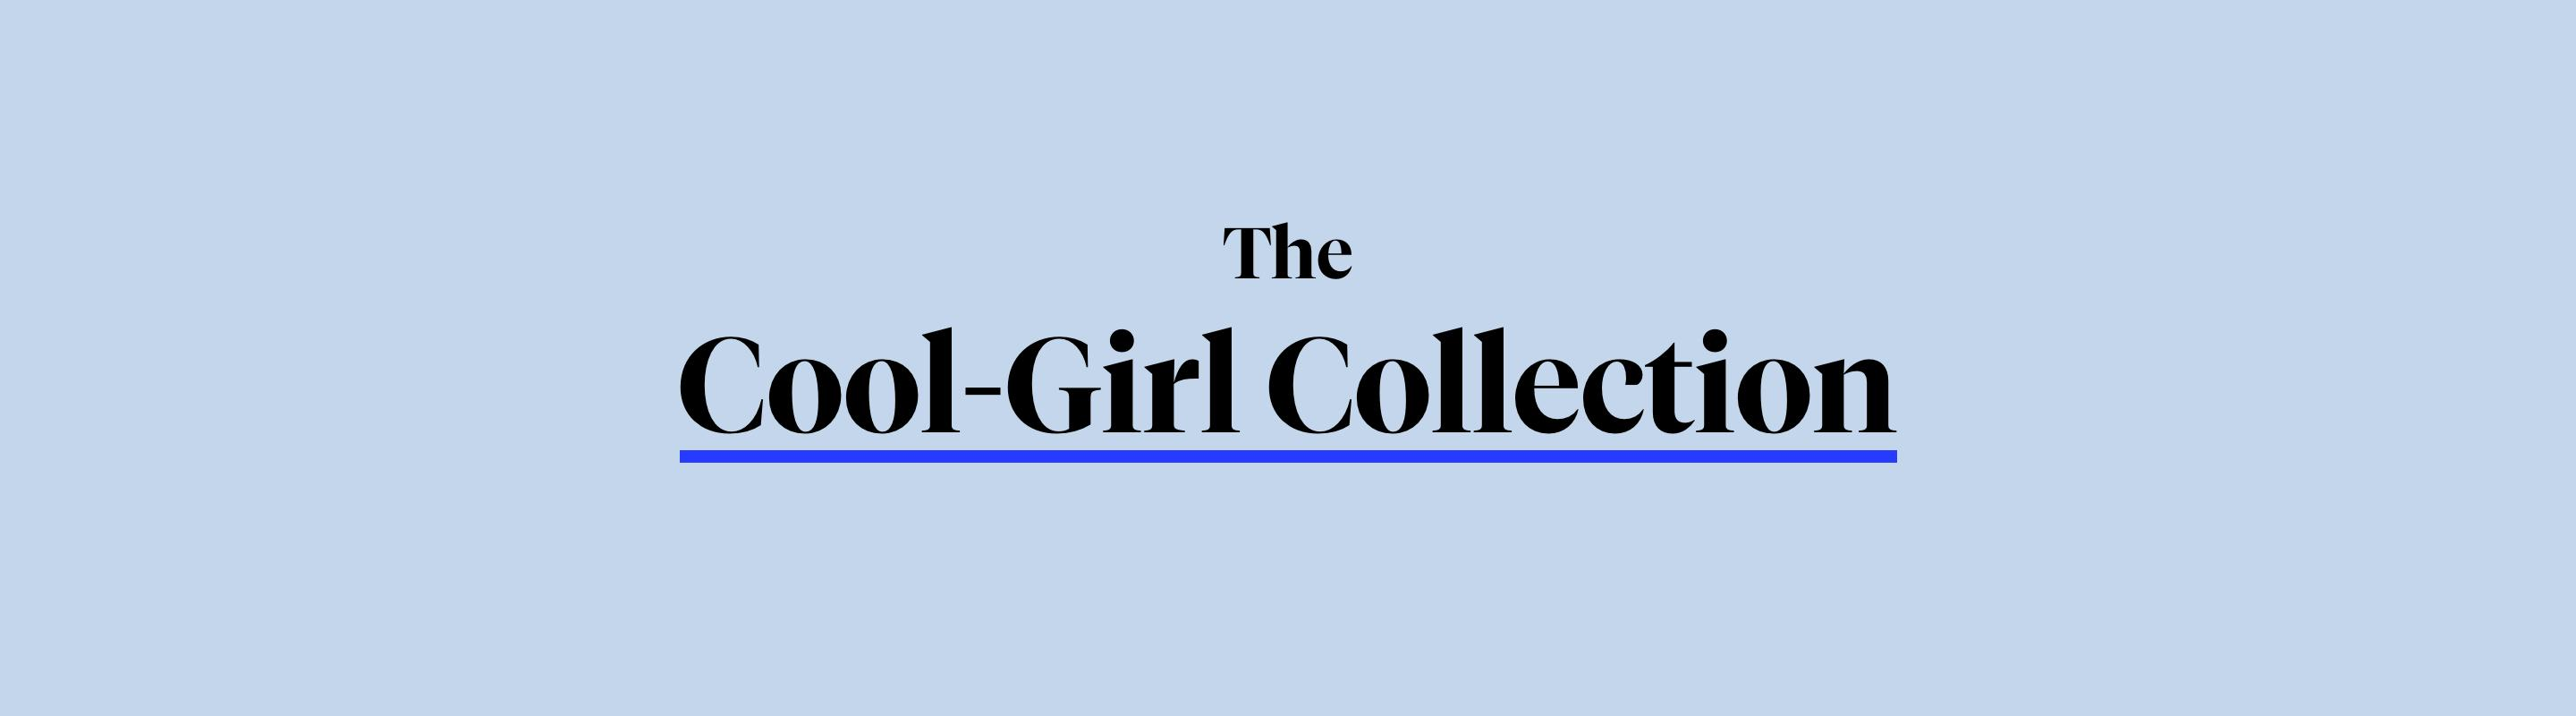 The Cool-Girl Collection